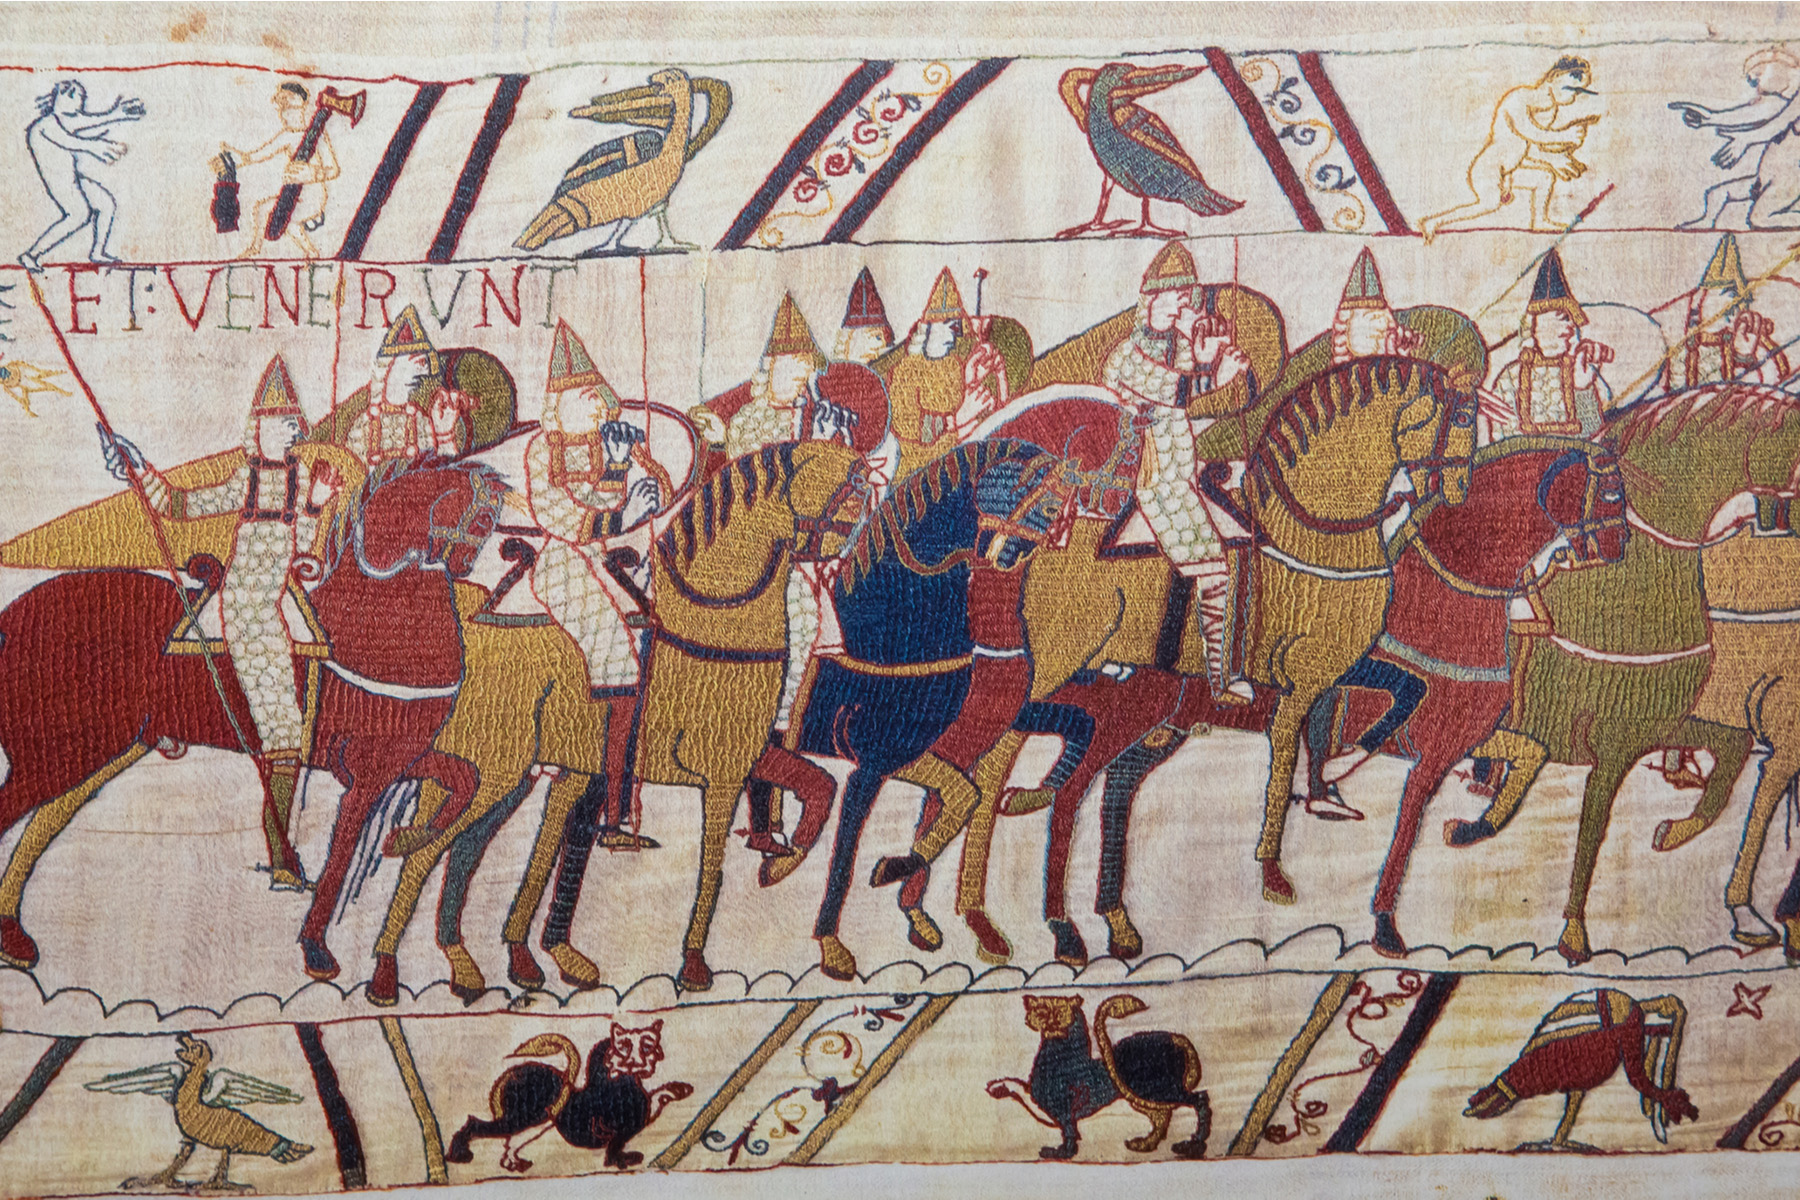 The Norman invasion of England